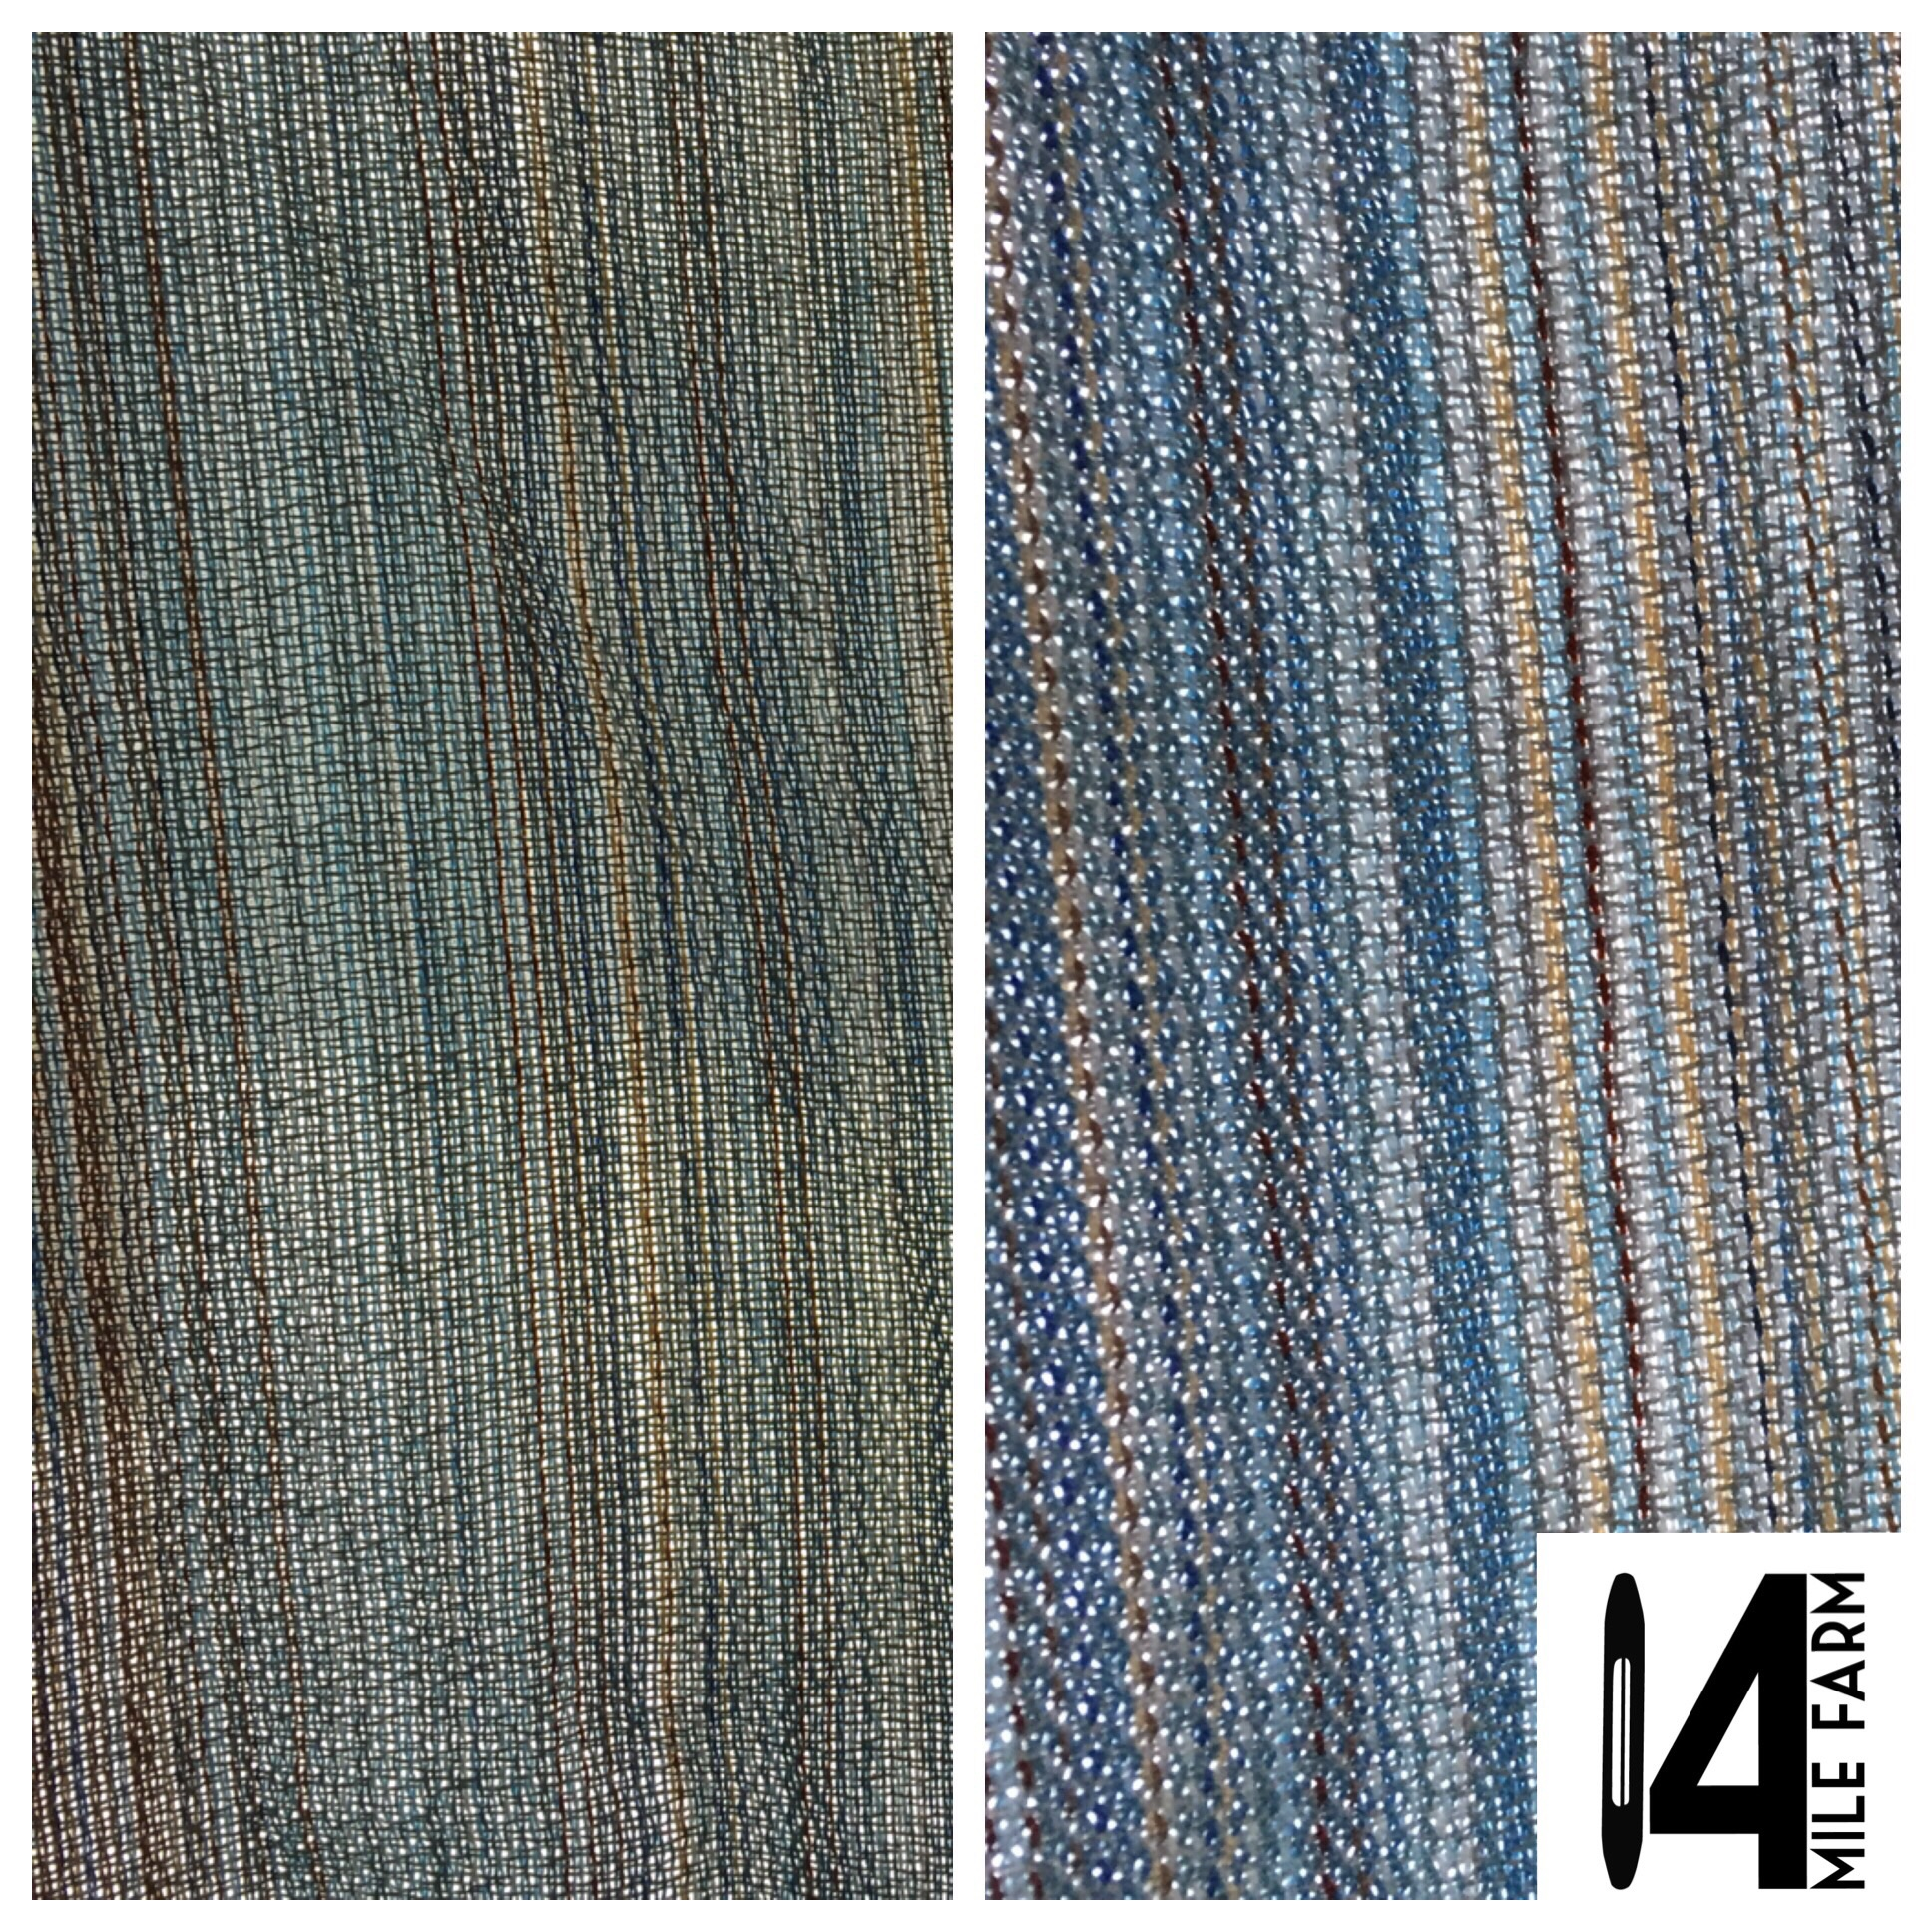 I was surprised by just how much the color of the warp was revealed post wet finishing.  You can see the herringbone weave structure more clearly in the second photo as well.  Both photos were taken in front of a window in very similar light.  This change is due in part to the way that the wet finishing process lets the weft (grey here) really move three dimensionally going over and under the warp threads as it looses the two dimensionality imposed by tension on the loom.